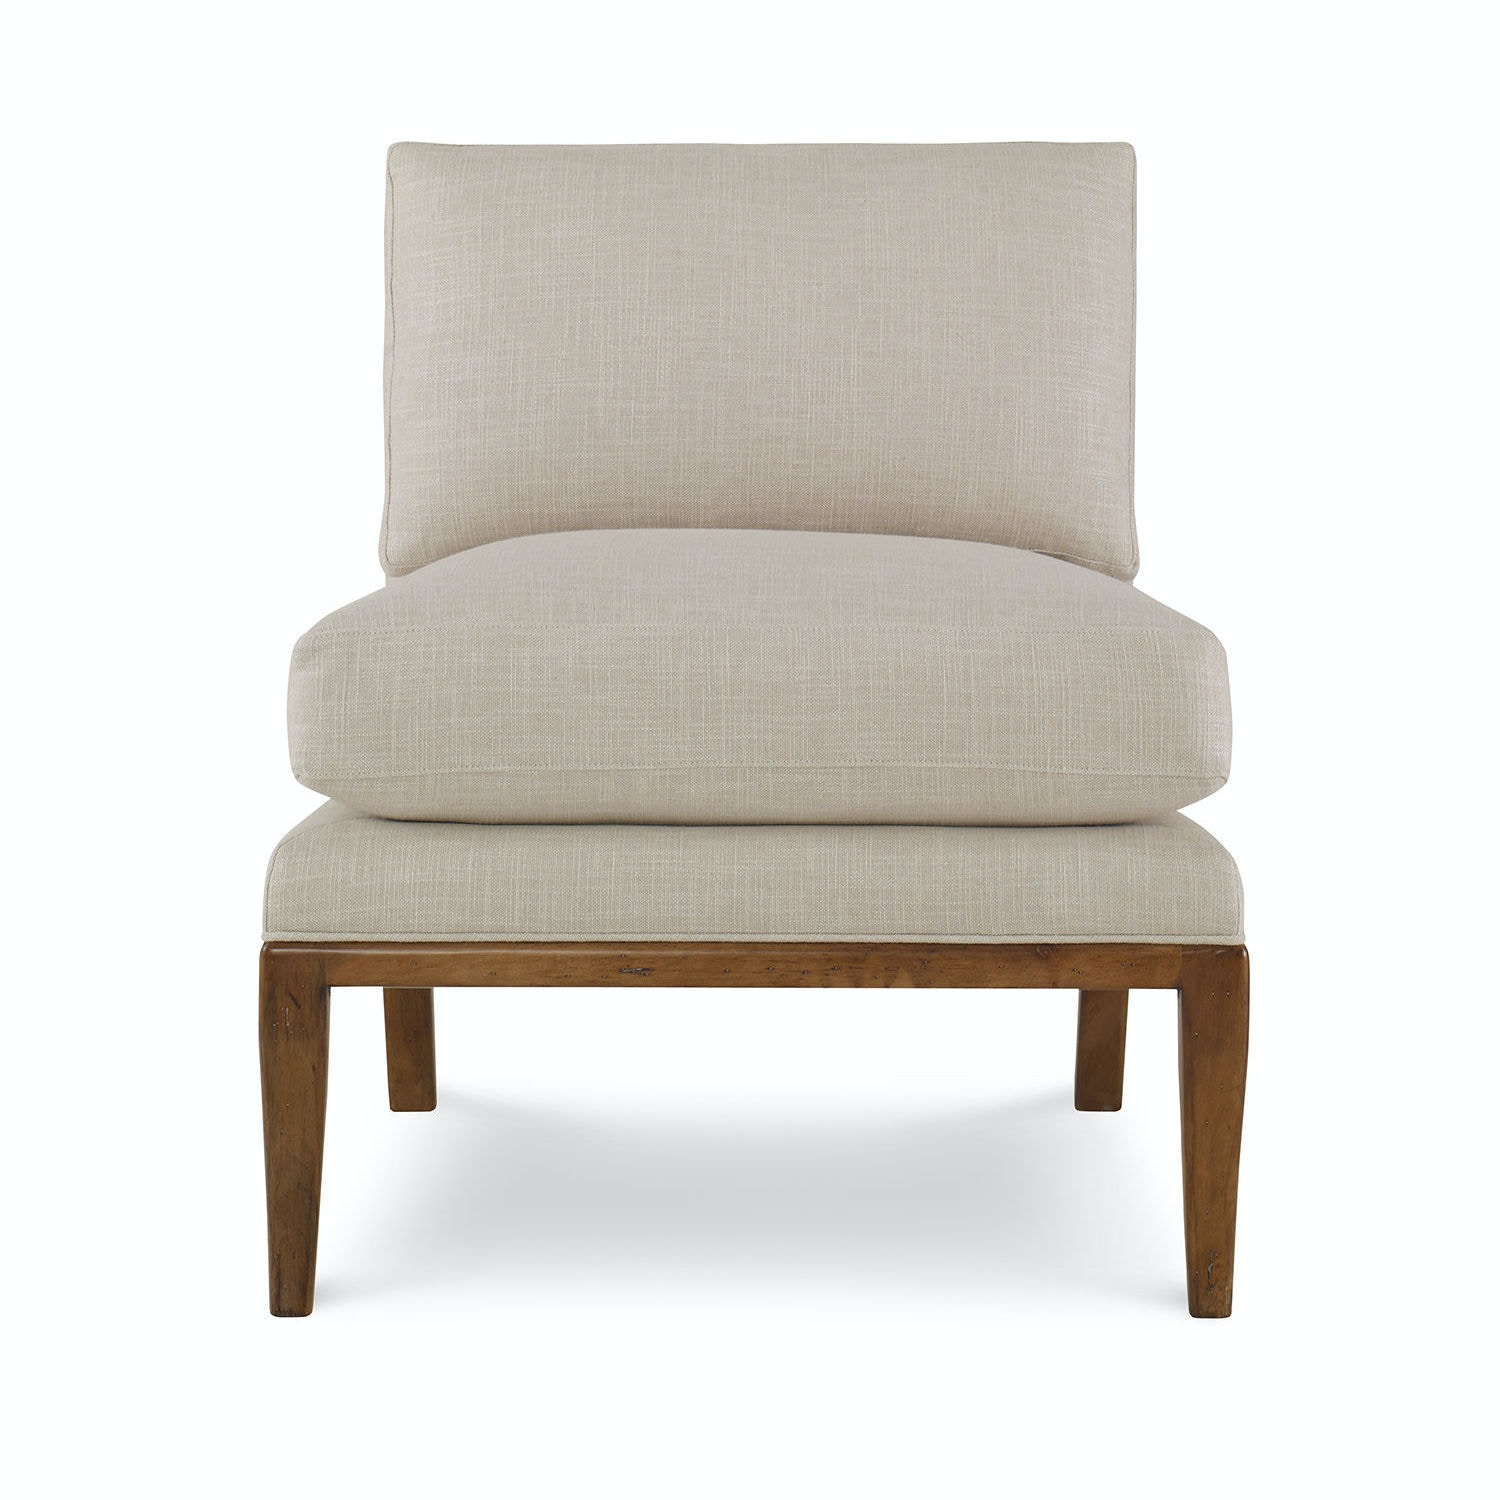 lee jofa spencer slipper chair h382220